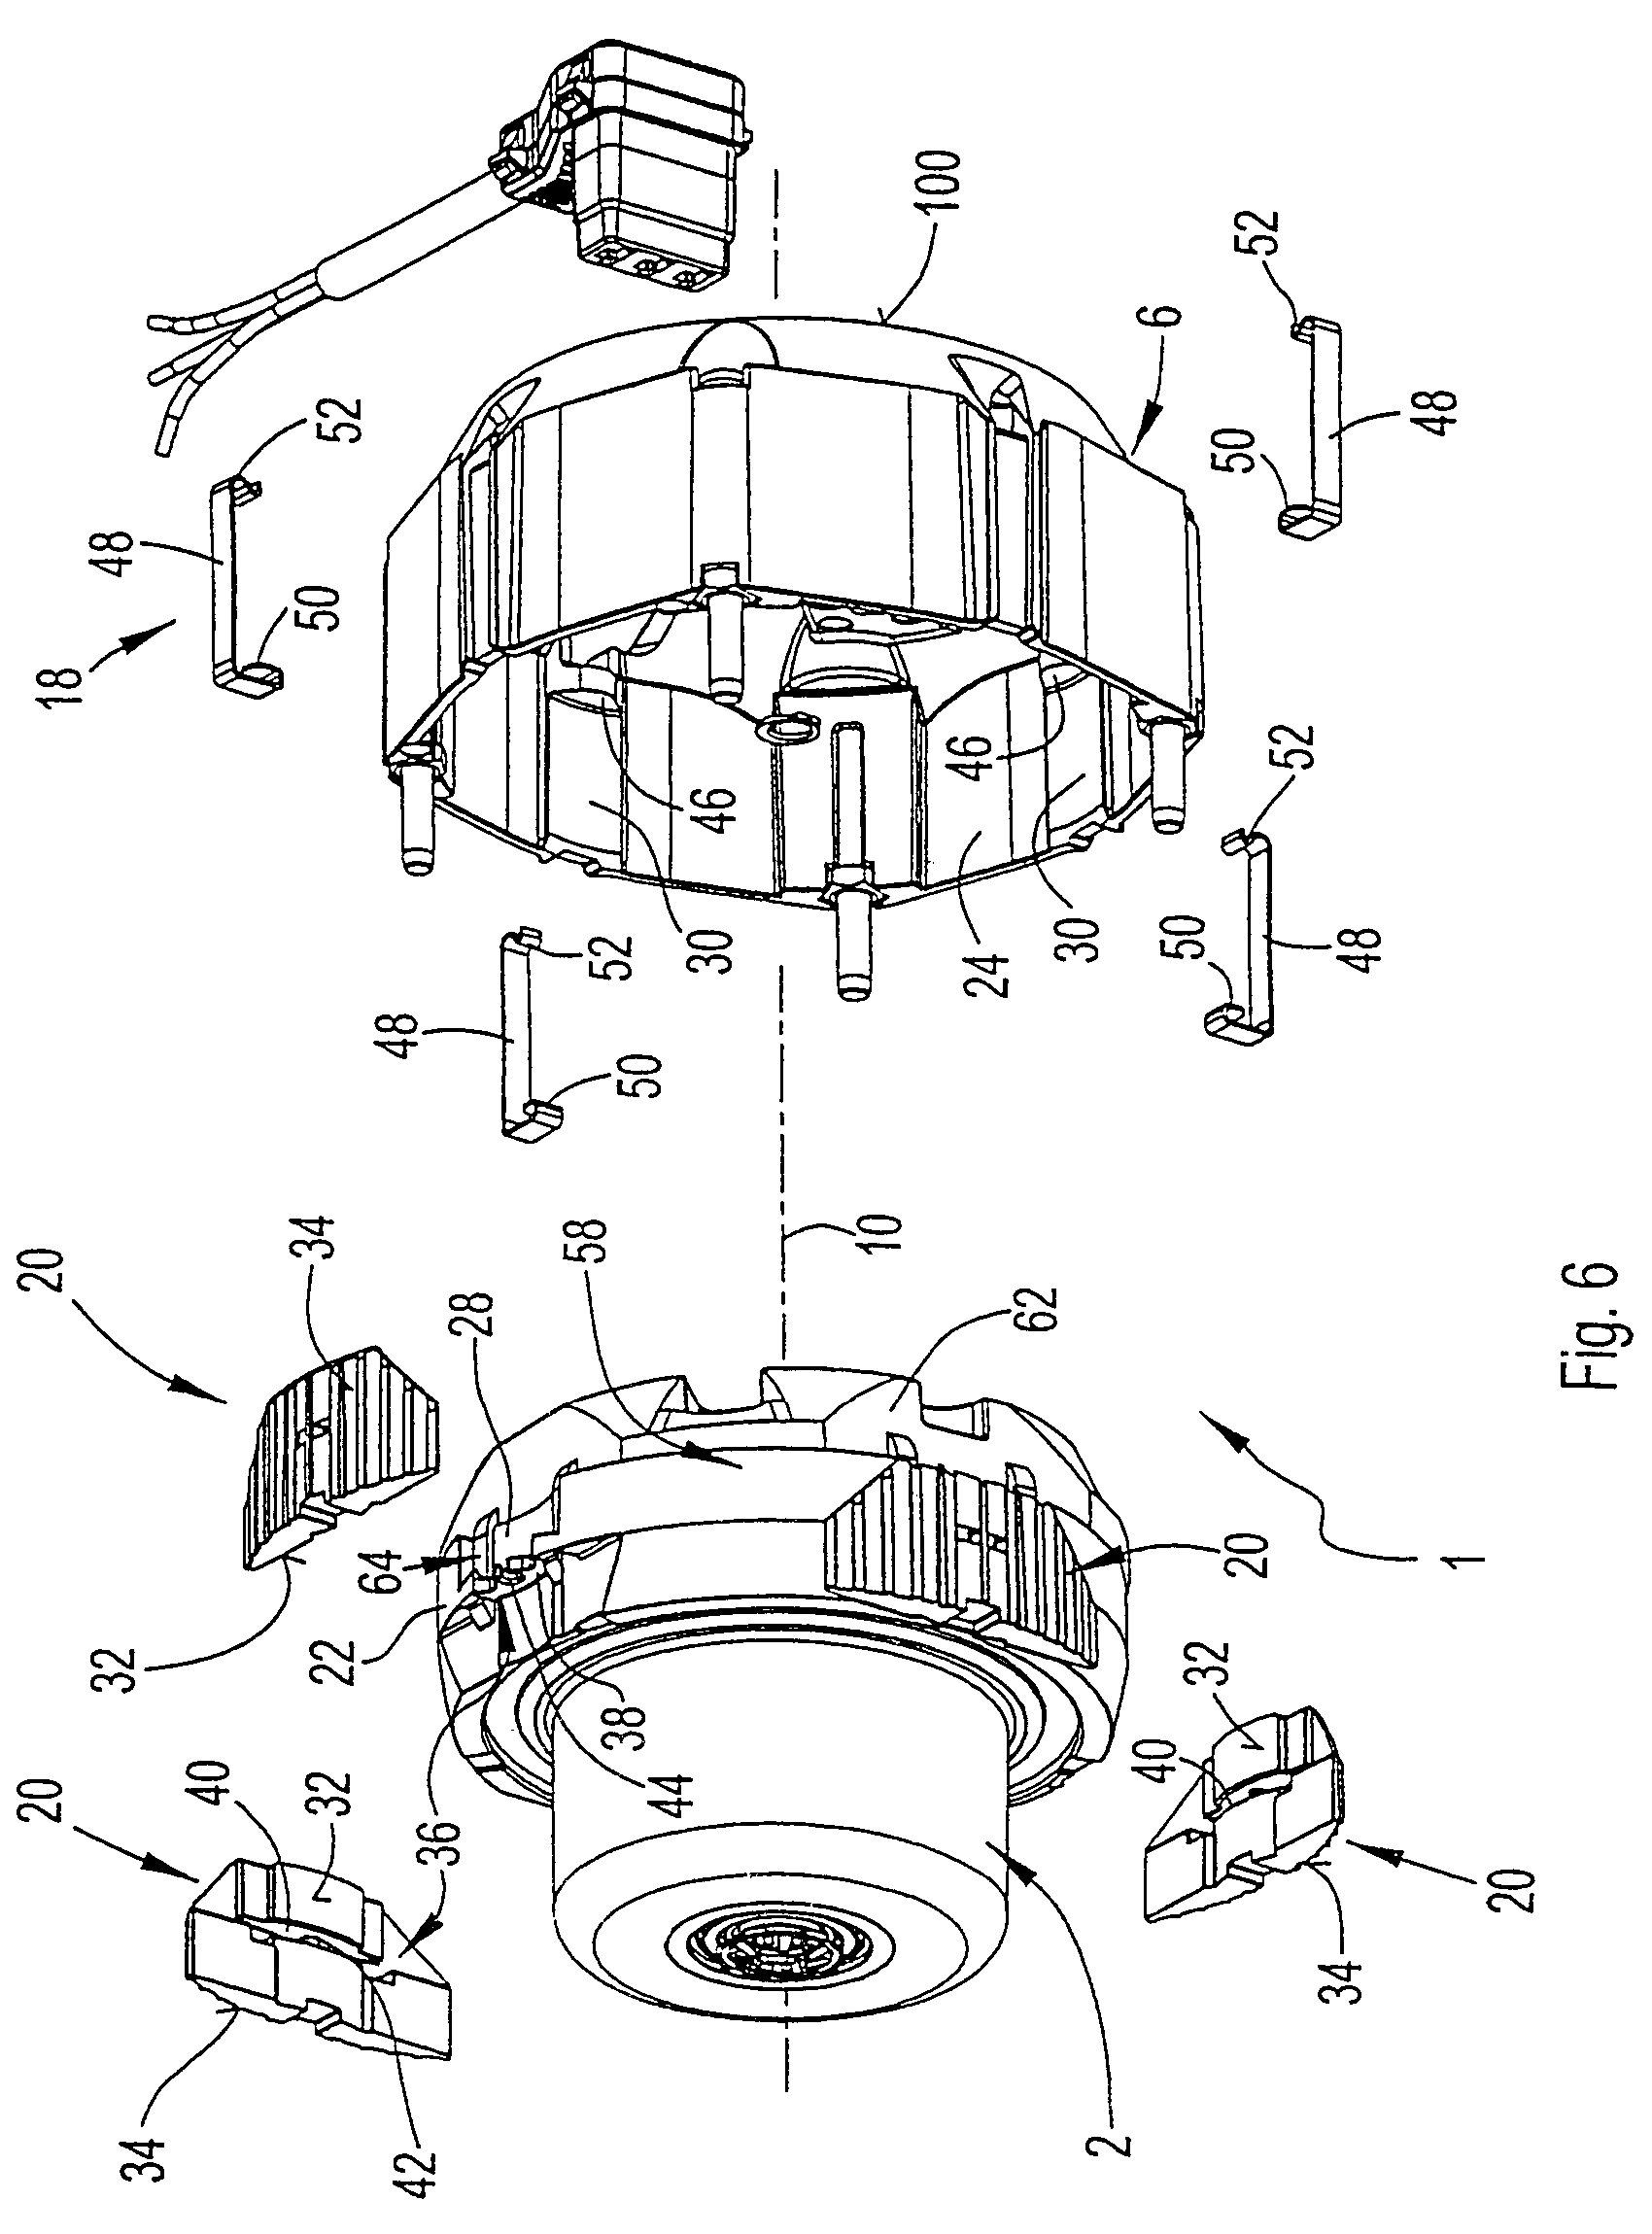 Patent Us6987336 Electric Motor With Screwless Plug Type Mounting Google Patents